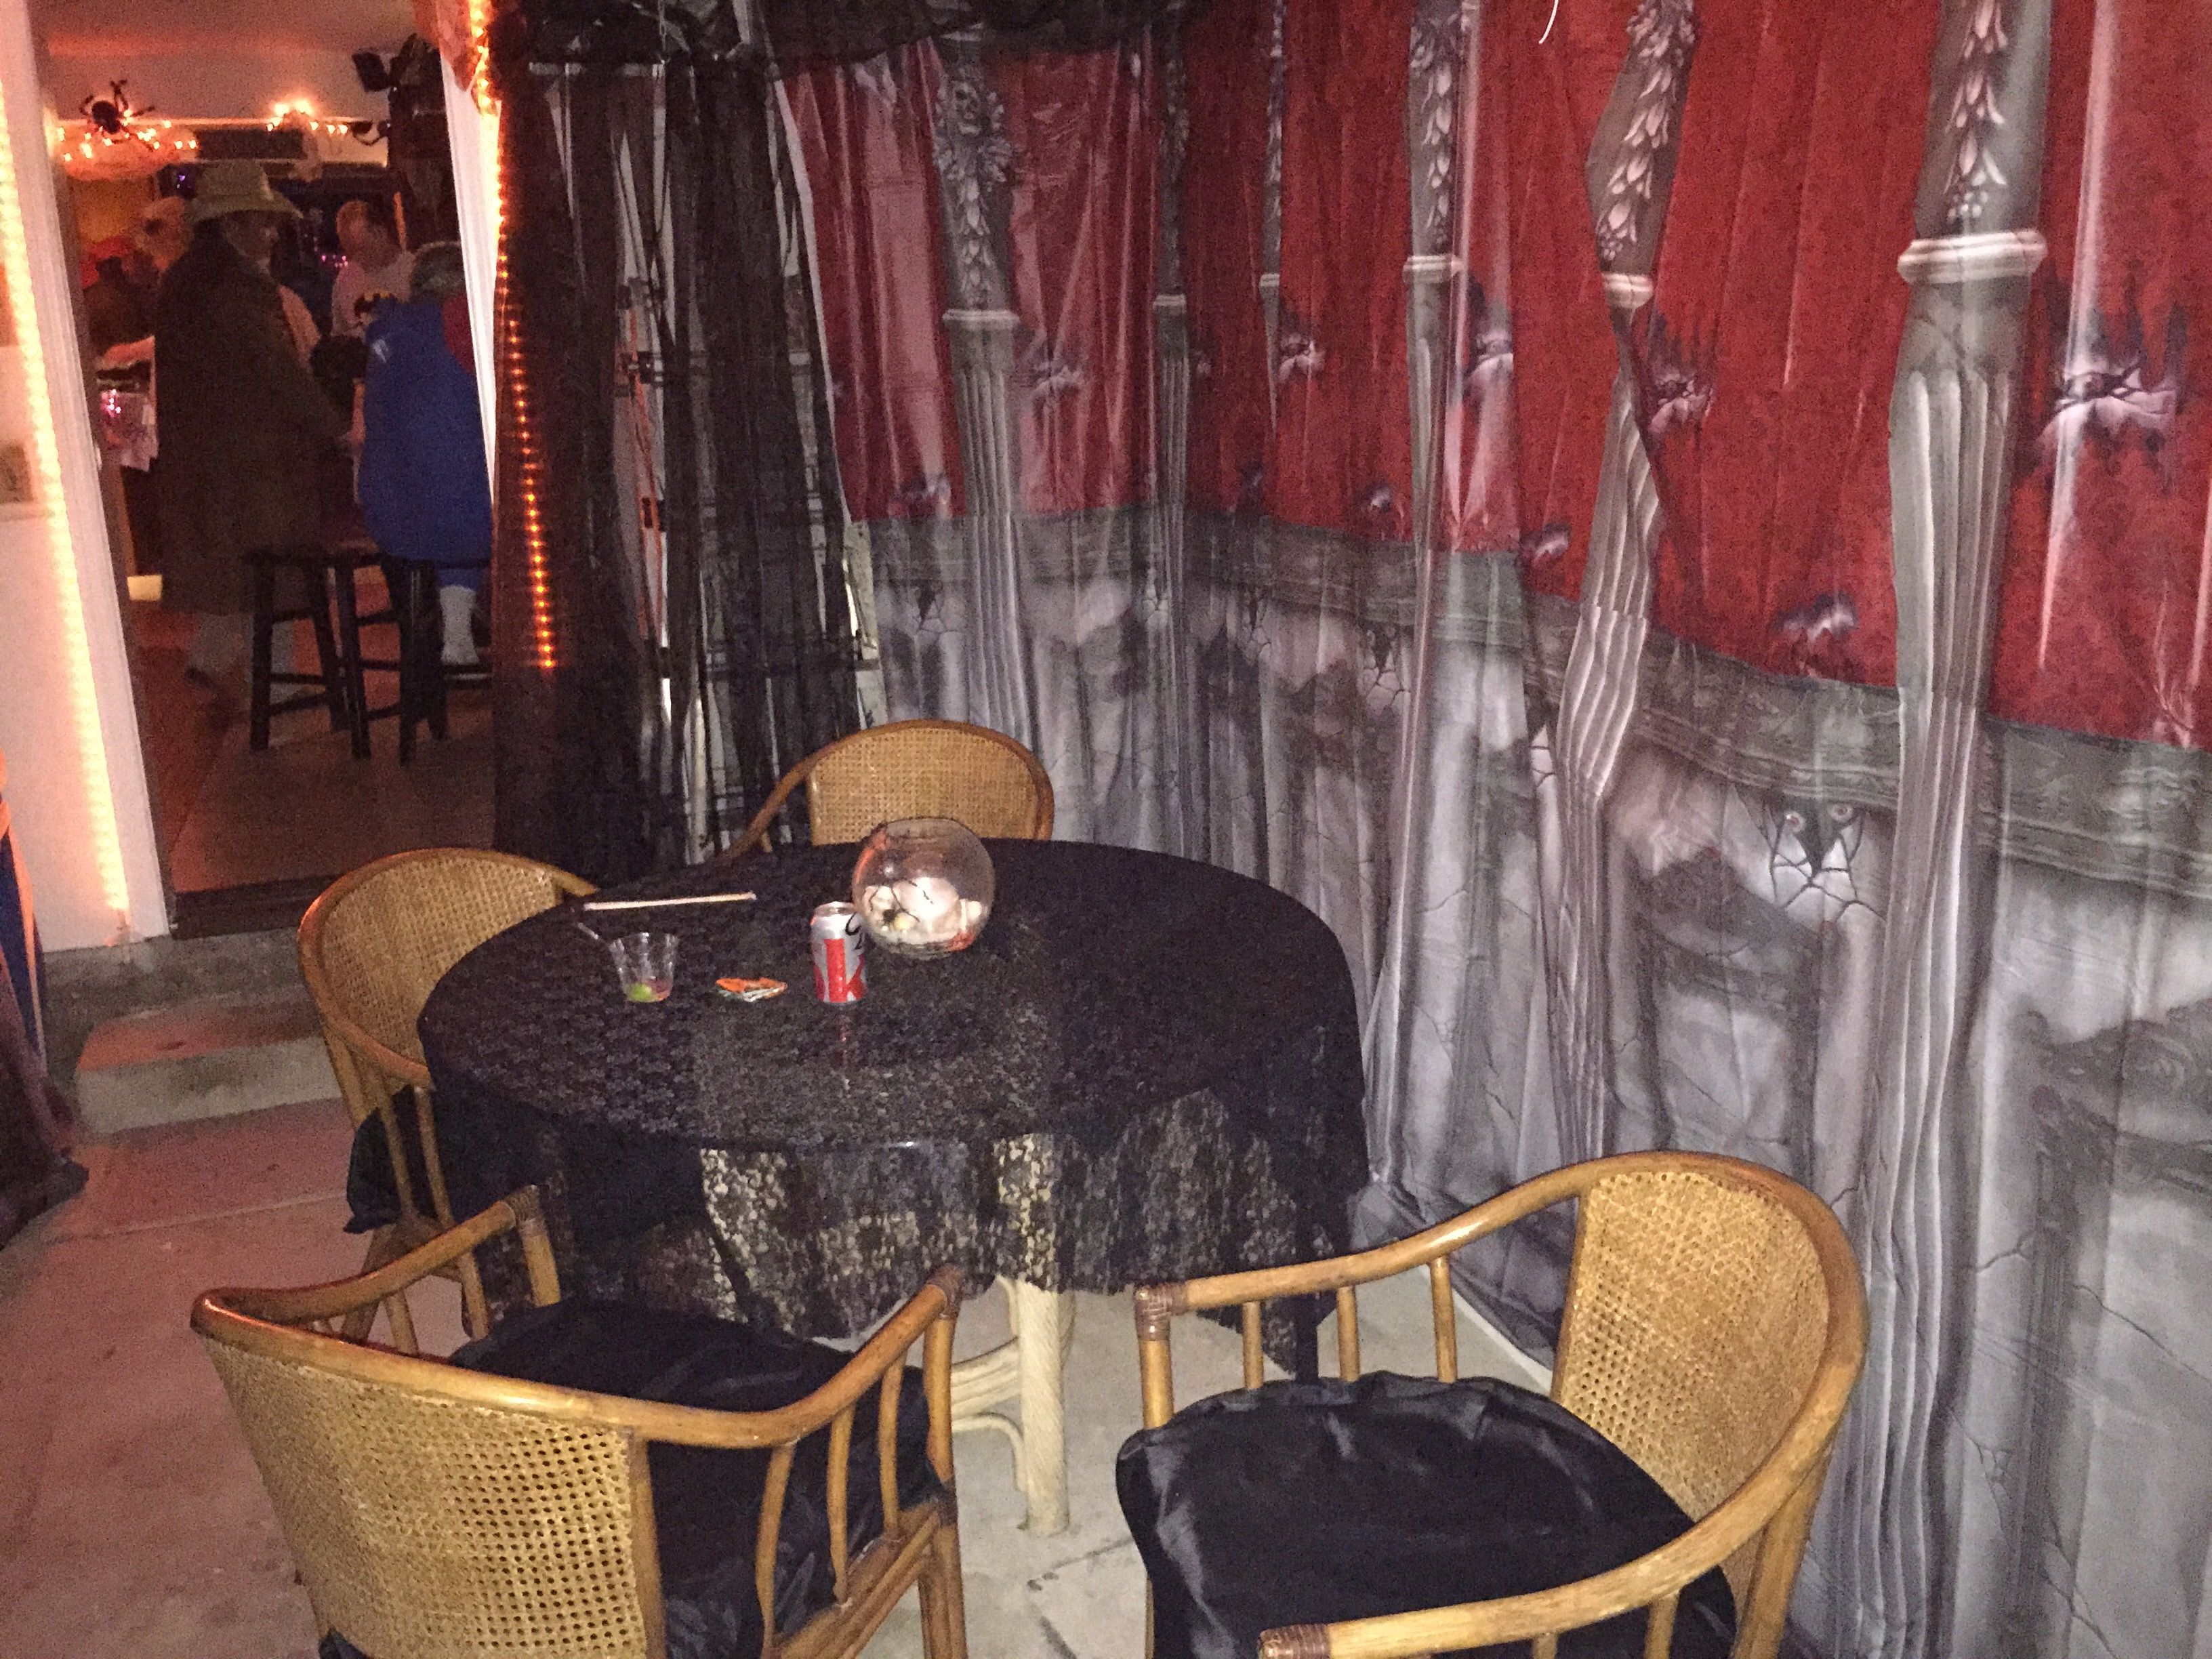 Decorating #Halloween Seance room Holiday Halloween Pinterest - Decorating For Halloween